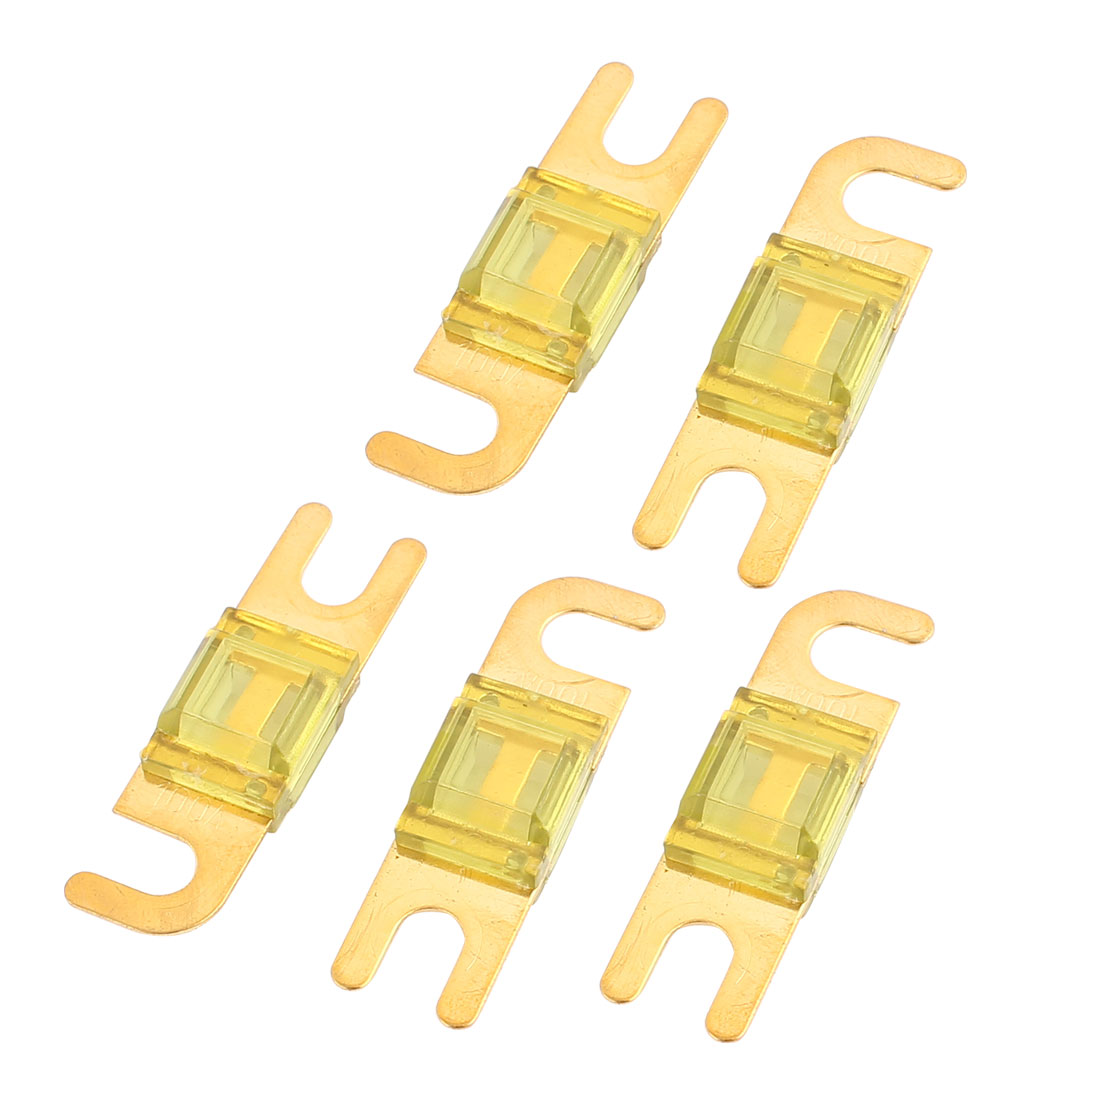 5 pcs Mini-ANL Fuses 100A Car Audio Power Wire Boat Auto Electronics Fuse Yellow